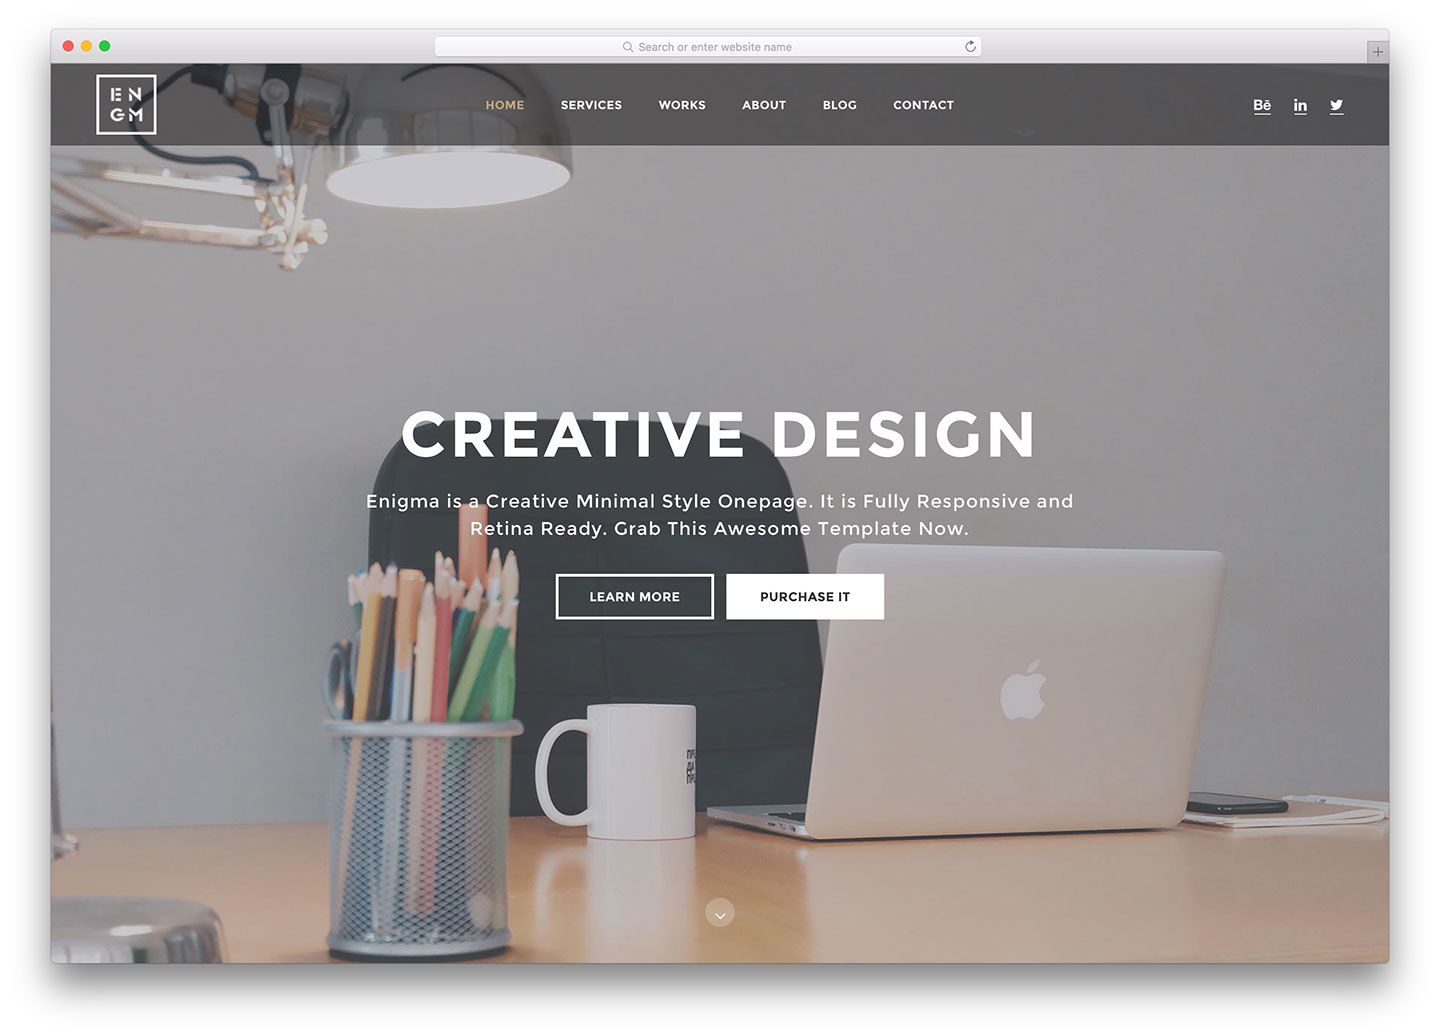 006 Imposing Simple Web Page Template Free Download High Resolution  One Website Html With CsFull